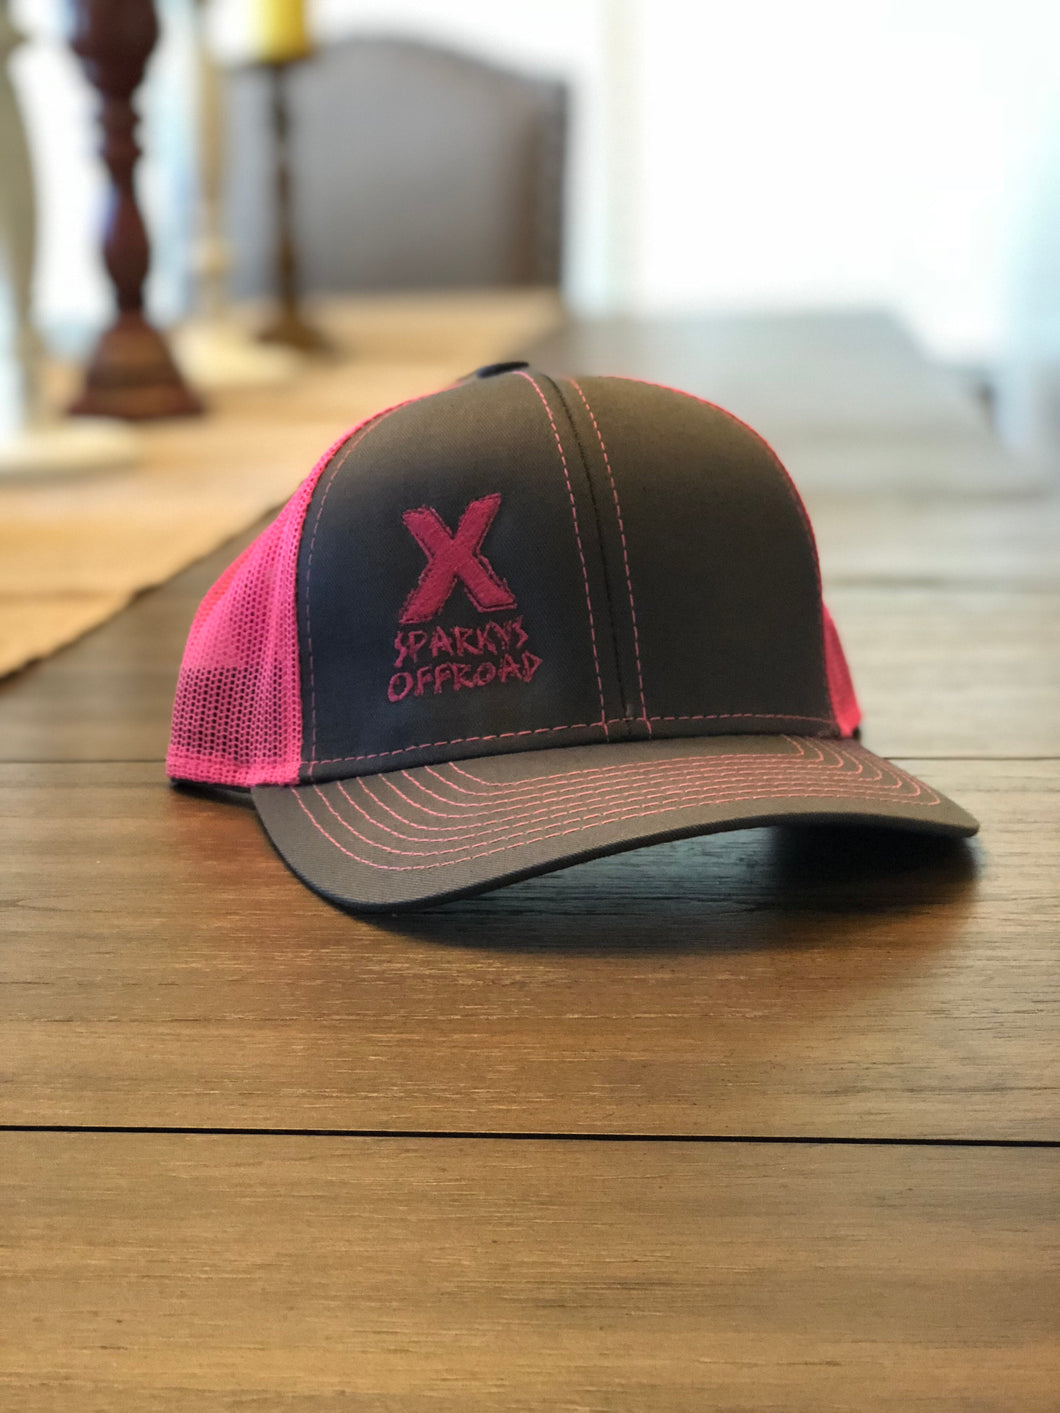 Sparky's Offroad Charcoal & Pink Trucker Hat